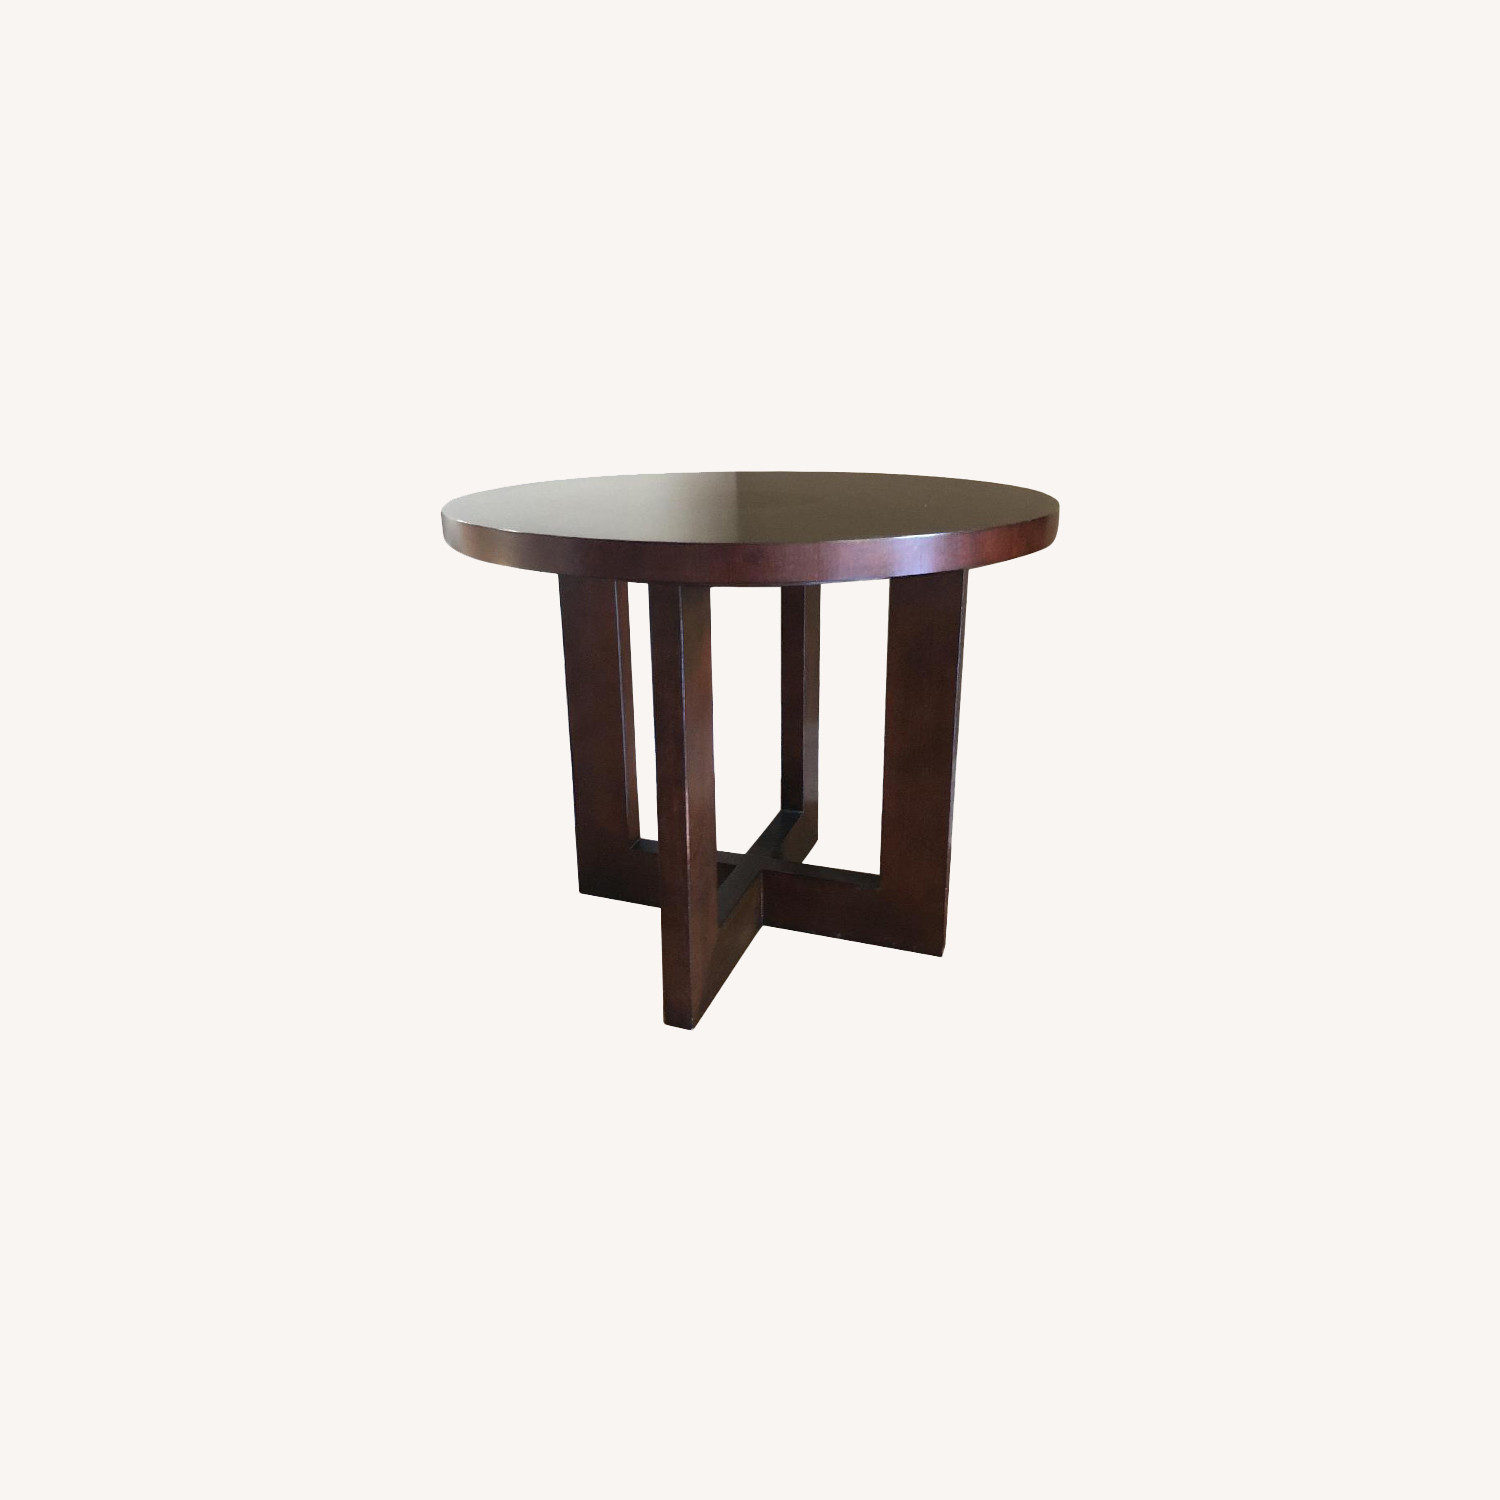 Ethan Allen Round Wooden Side Table